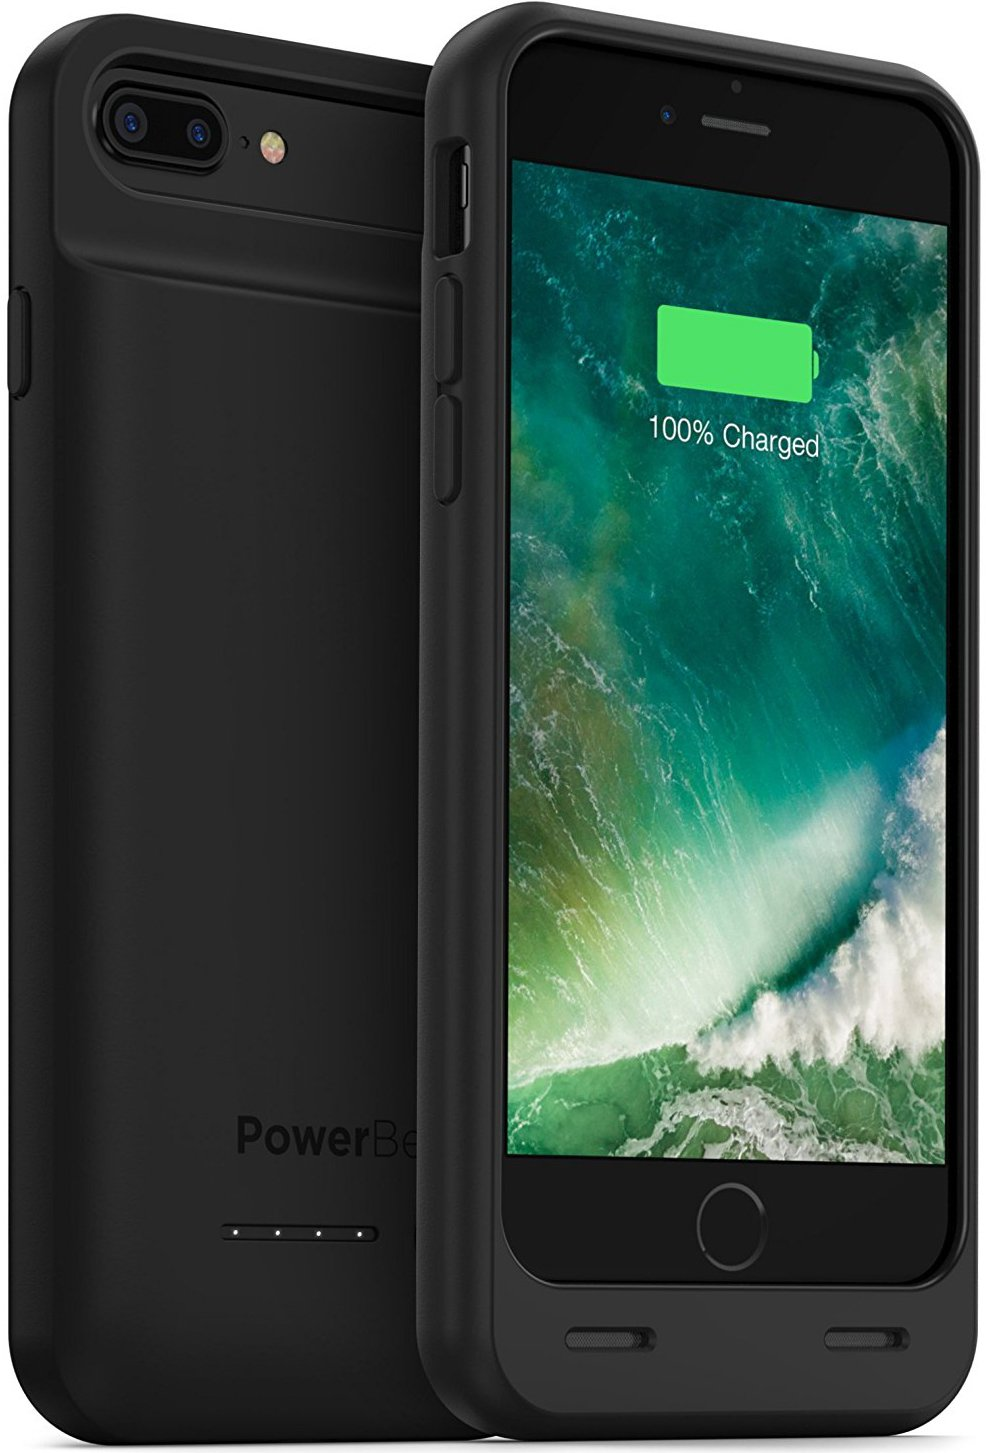 PowerBear iPhone 7 Plus Battery Case/iPhone 8 Plus Battery Case [4000 mAh] High Capacity Rechargeable Charger Pack for Apple iPhone 7+ / 8+ (Up to 135% Extra Battery) - Black [24 Month Warranty]